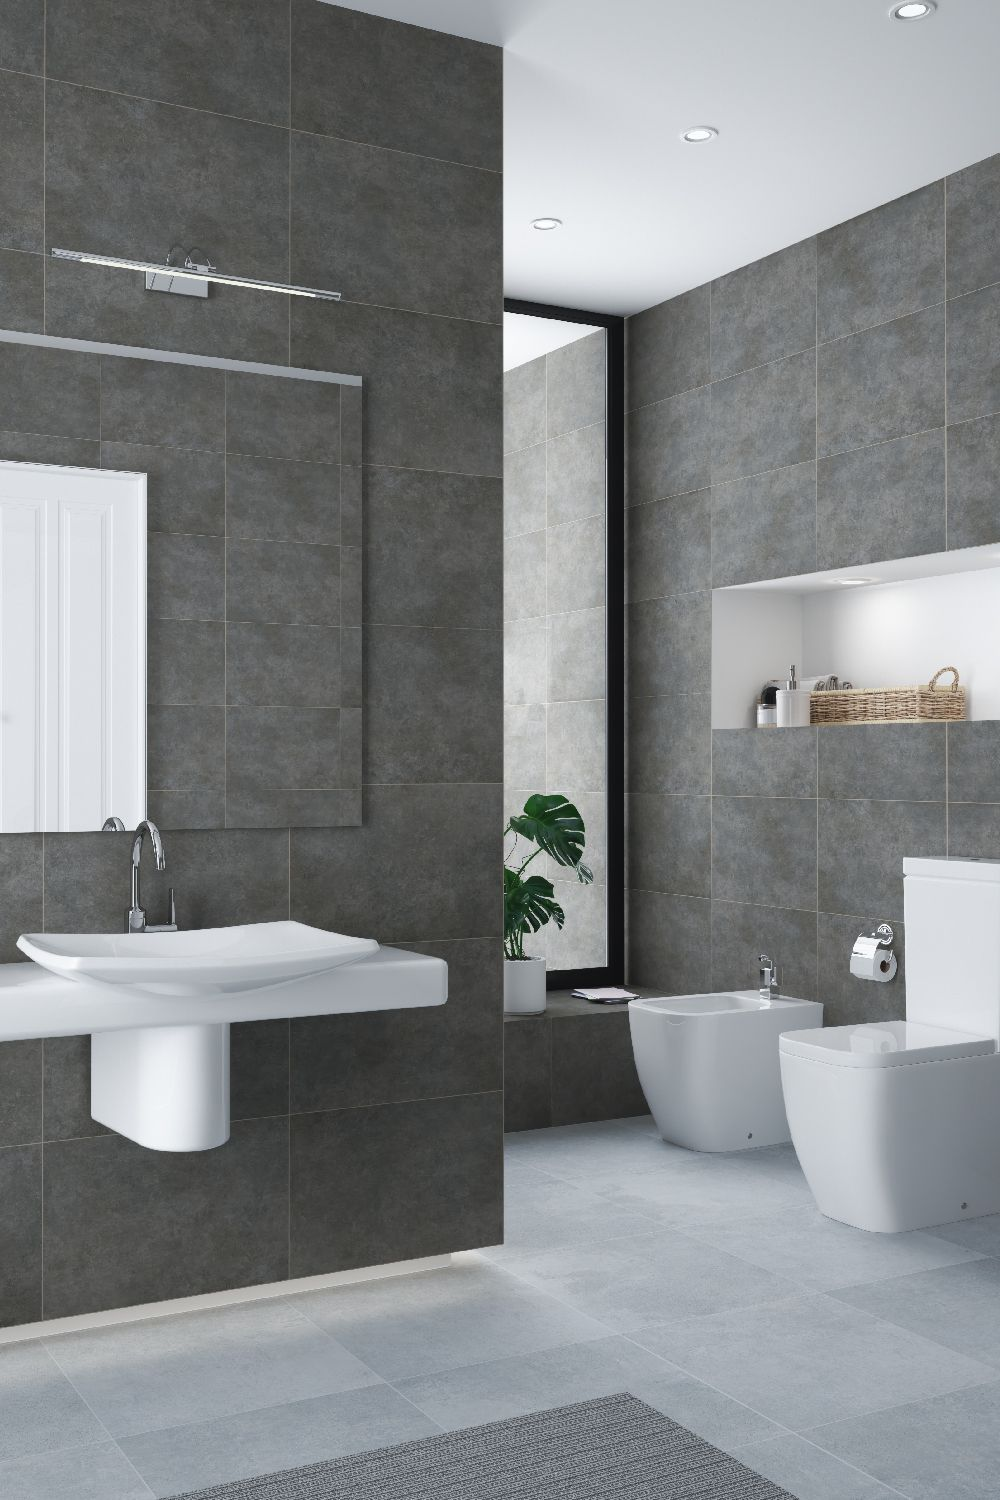 Aesthetic bathware for aesthetic bathrooms. # ...